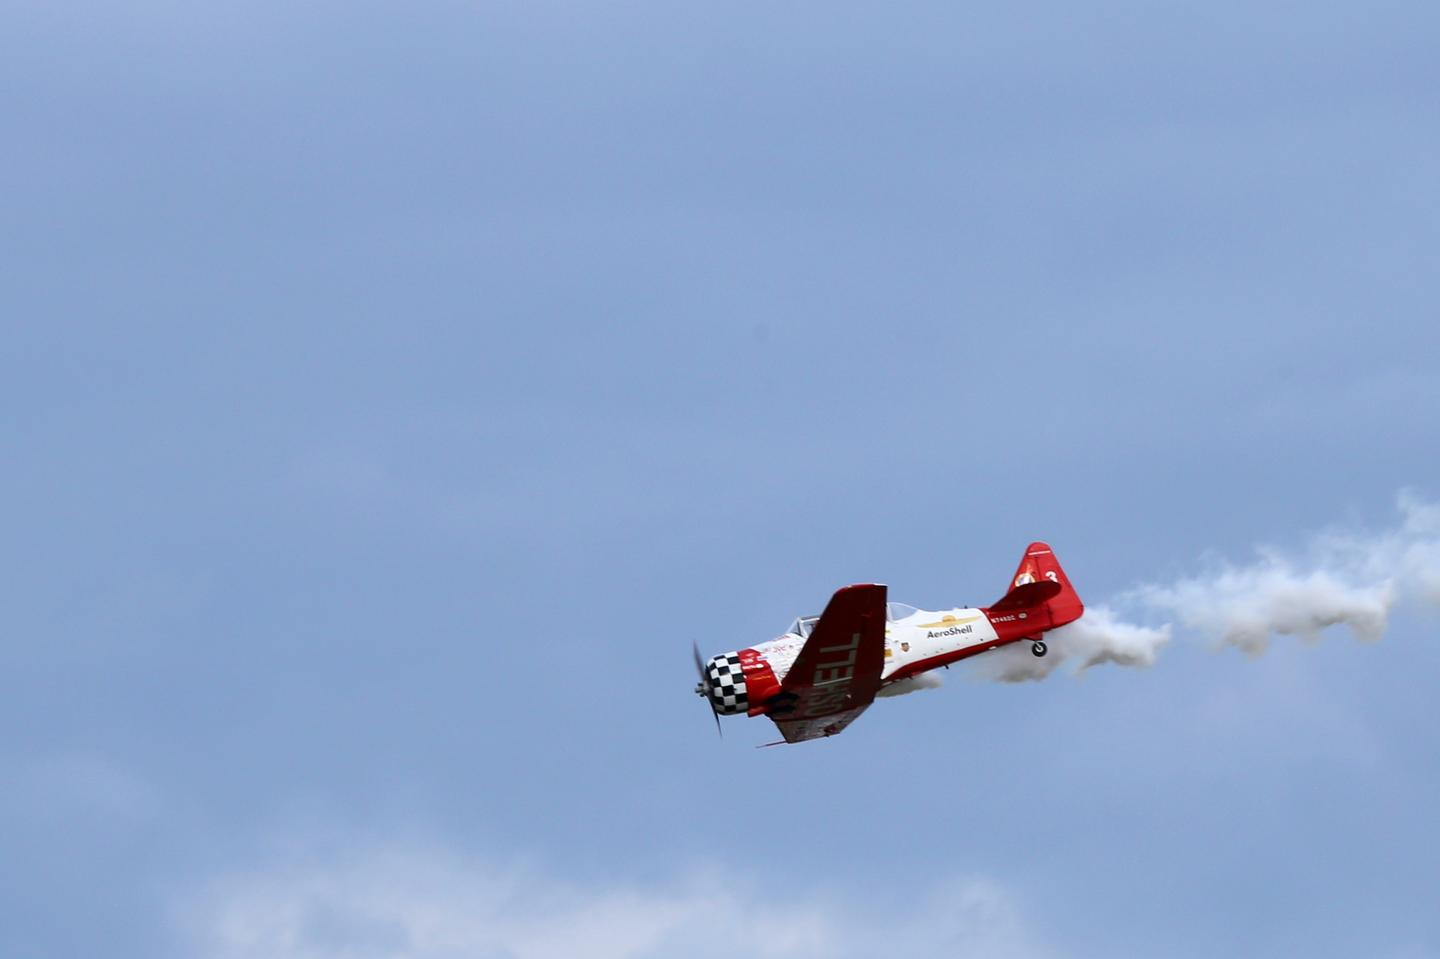 A Honda badged aerobatic plane performs at EAA AirVenture 2014 (Photo: Angus MacKenzie/Gizmag.com)